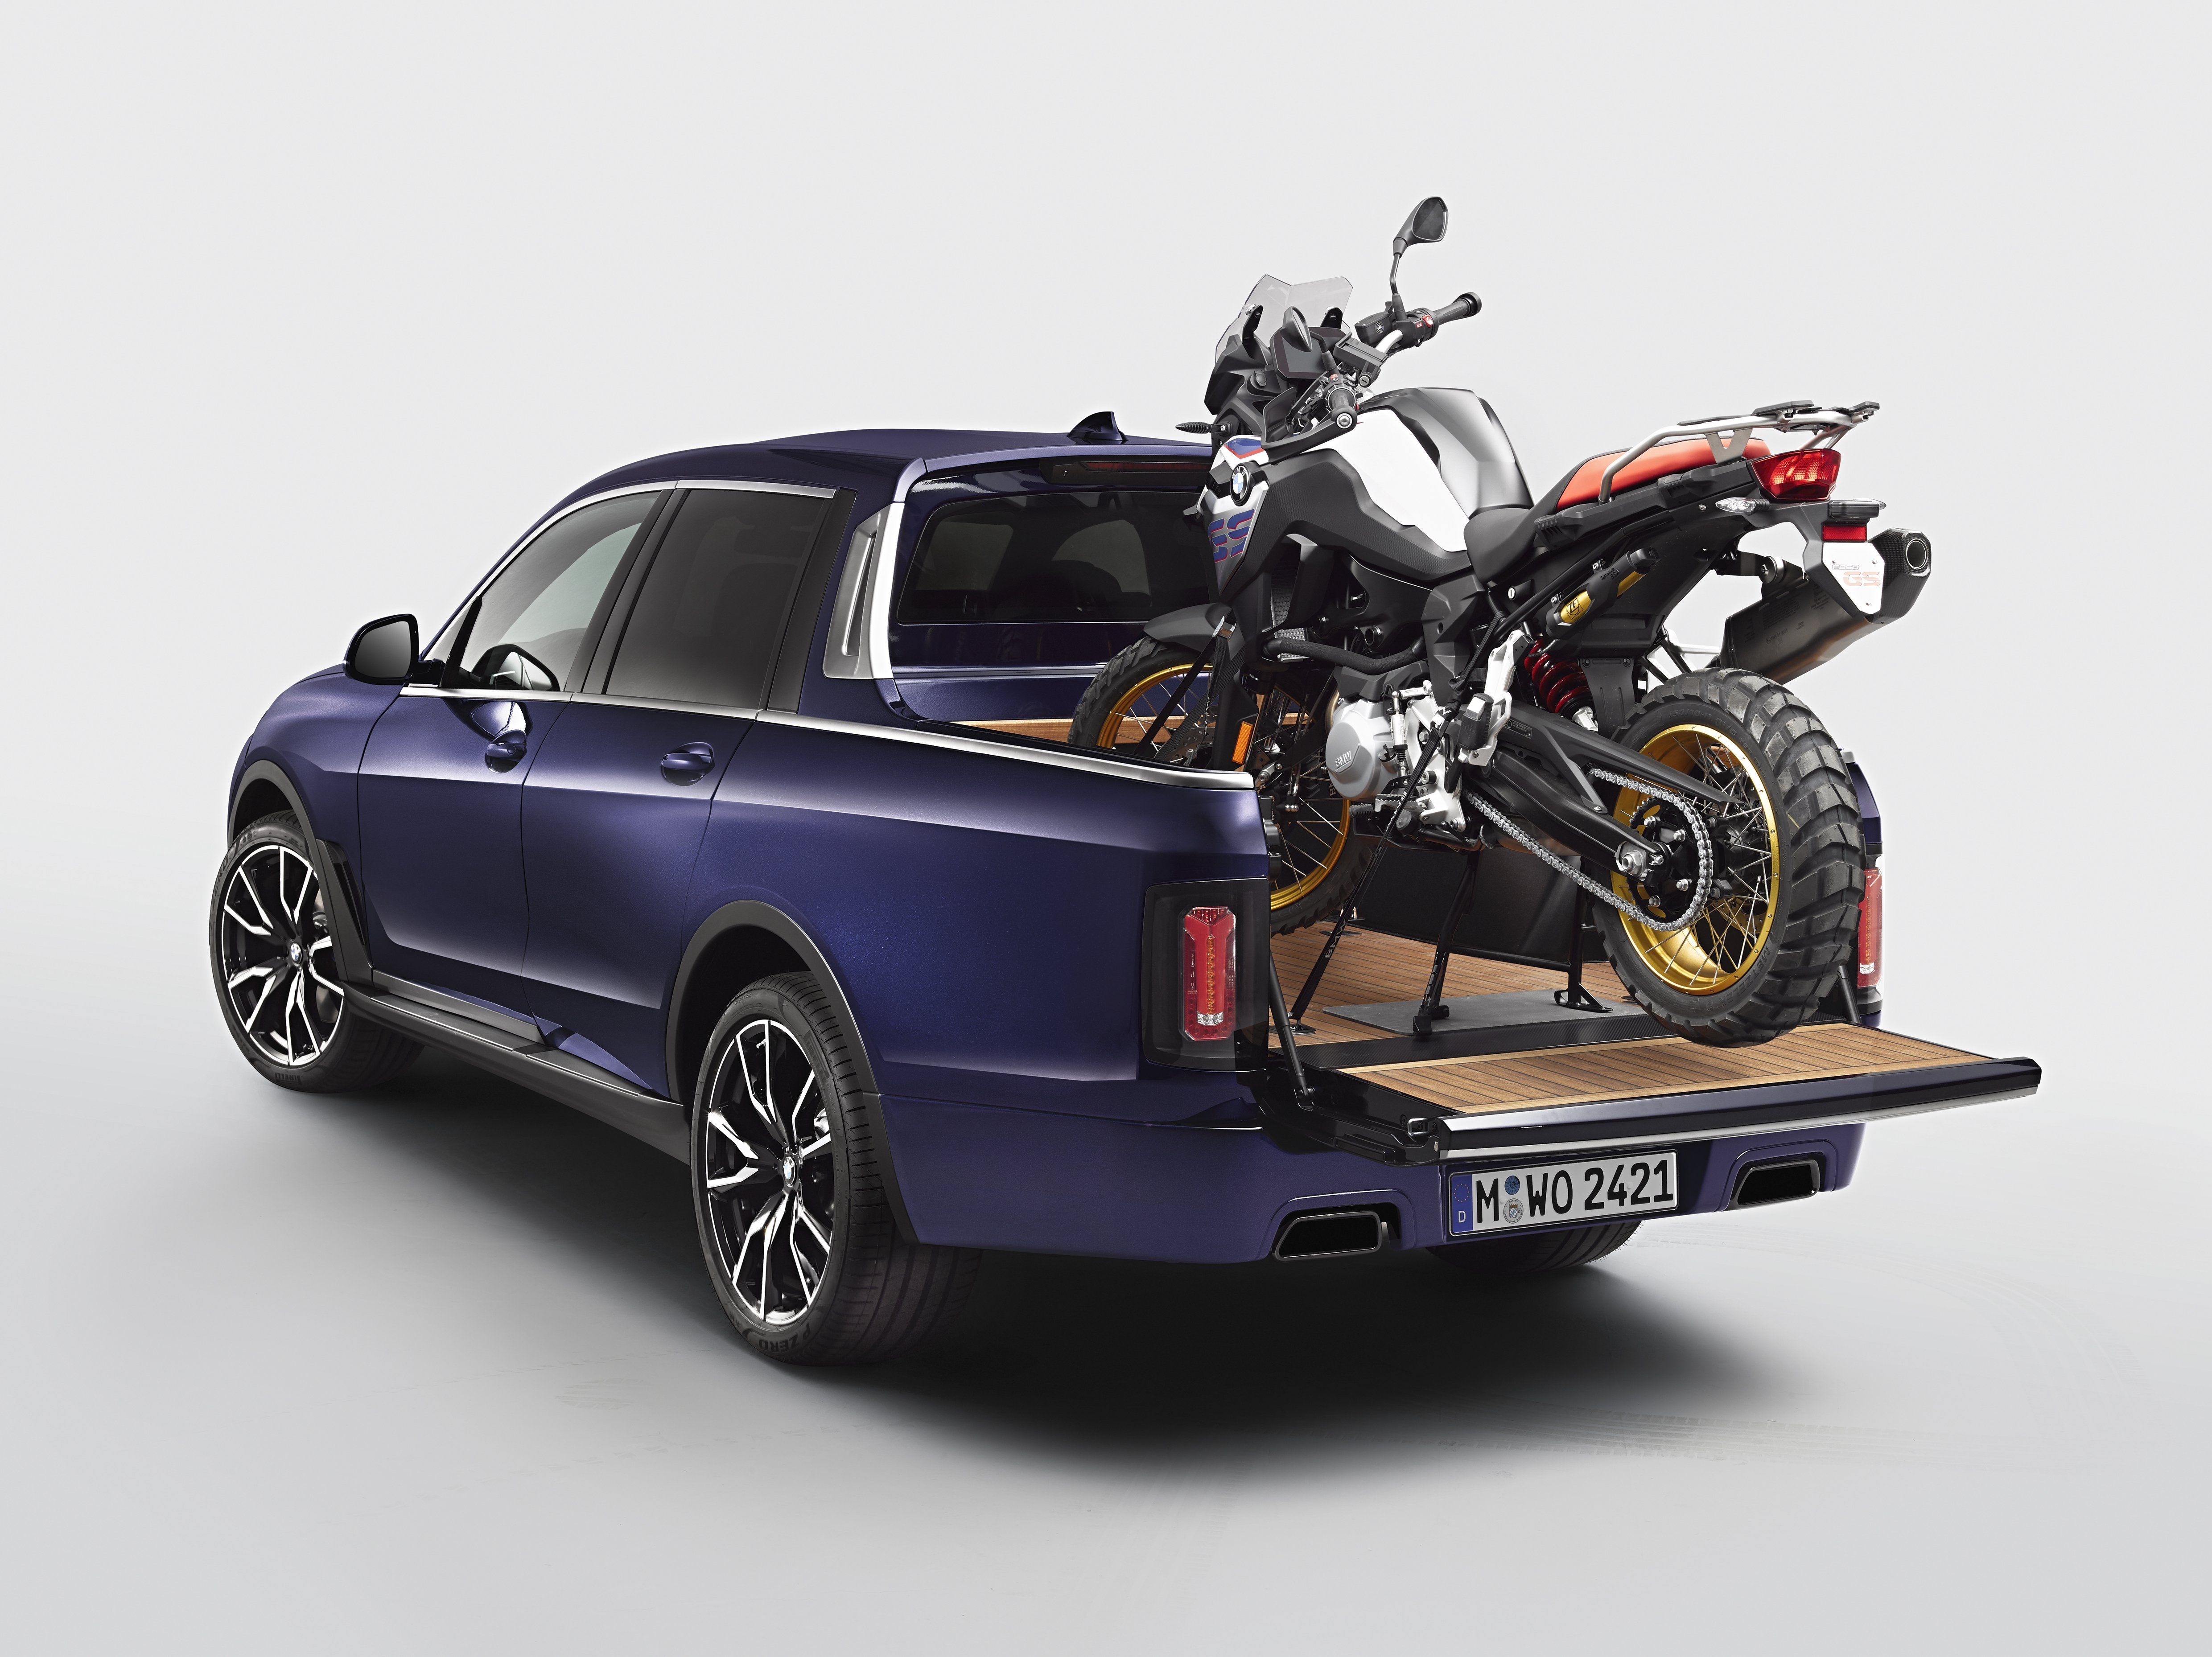 Bmw Is The Latest Automaker To Throw Its Hat In The Pickup Truck Ring Bmw X7 Pickup Trucks Pickup Truck Accessories